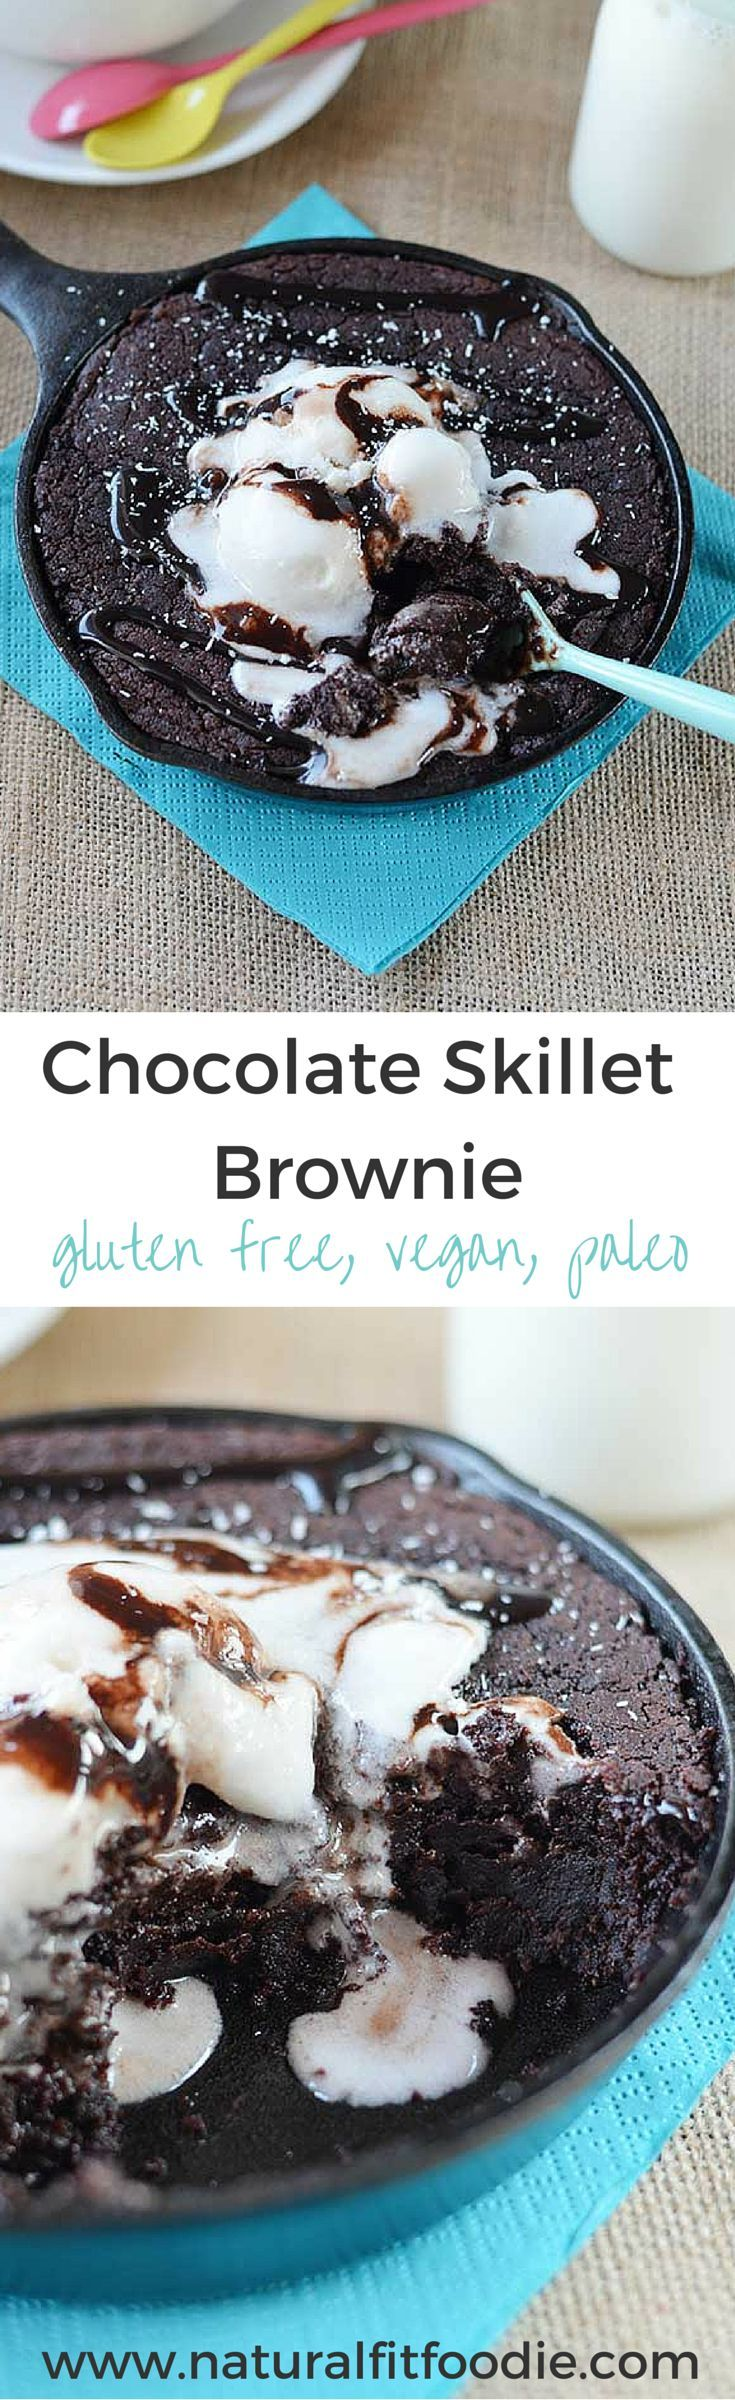 This Chocolate Skillet Brownie is dense, fudgy, gooey, chocolatey. All the things a brownie should be! It's got the added bonus of being gluten free, refined sugar free, paleo and vegan!